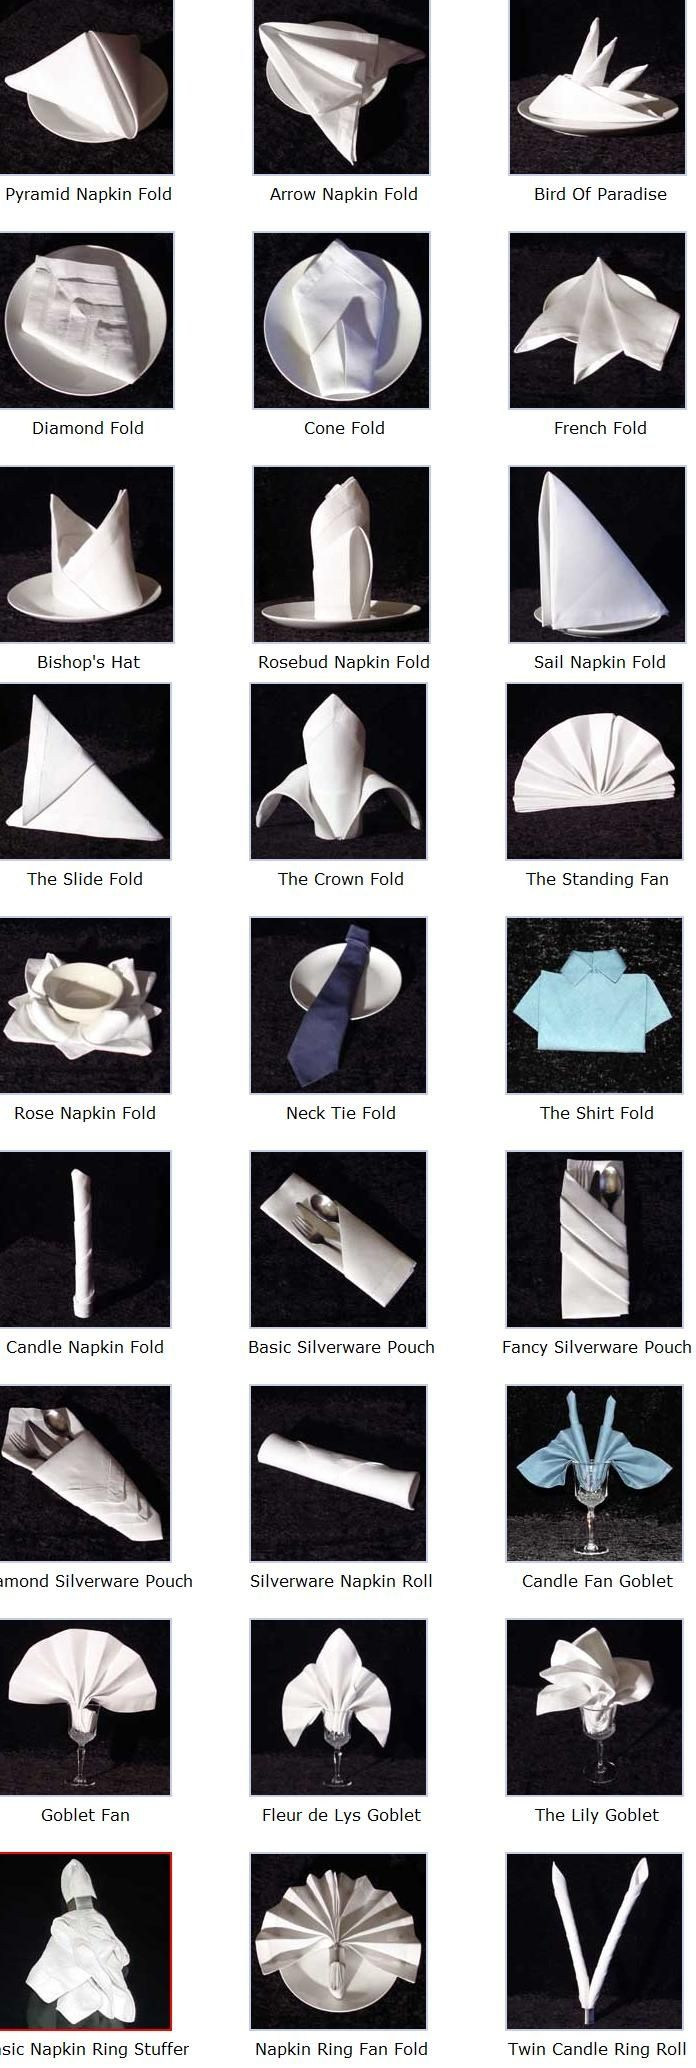 How to fold napkins many ways. This will come in handy during your holiday events! Click on a napkin design below for detailed folding instructions.